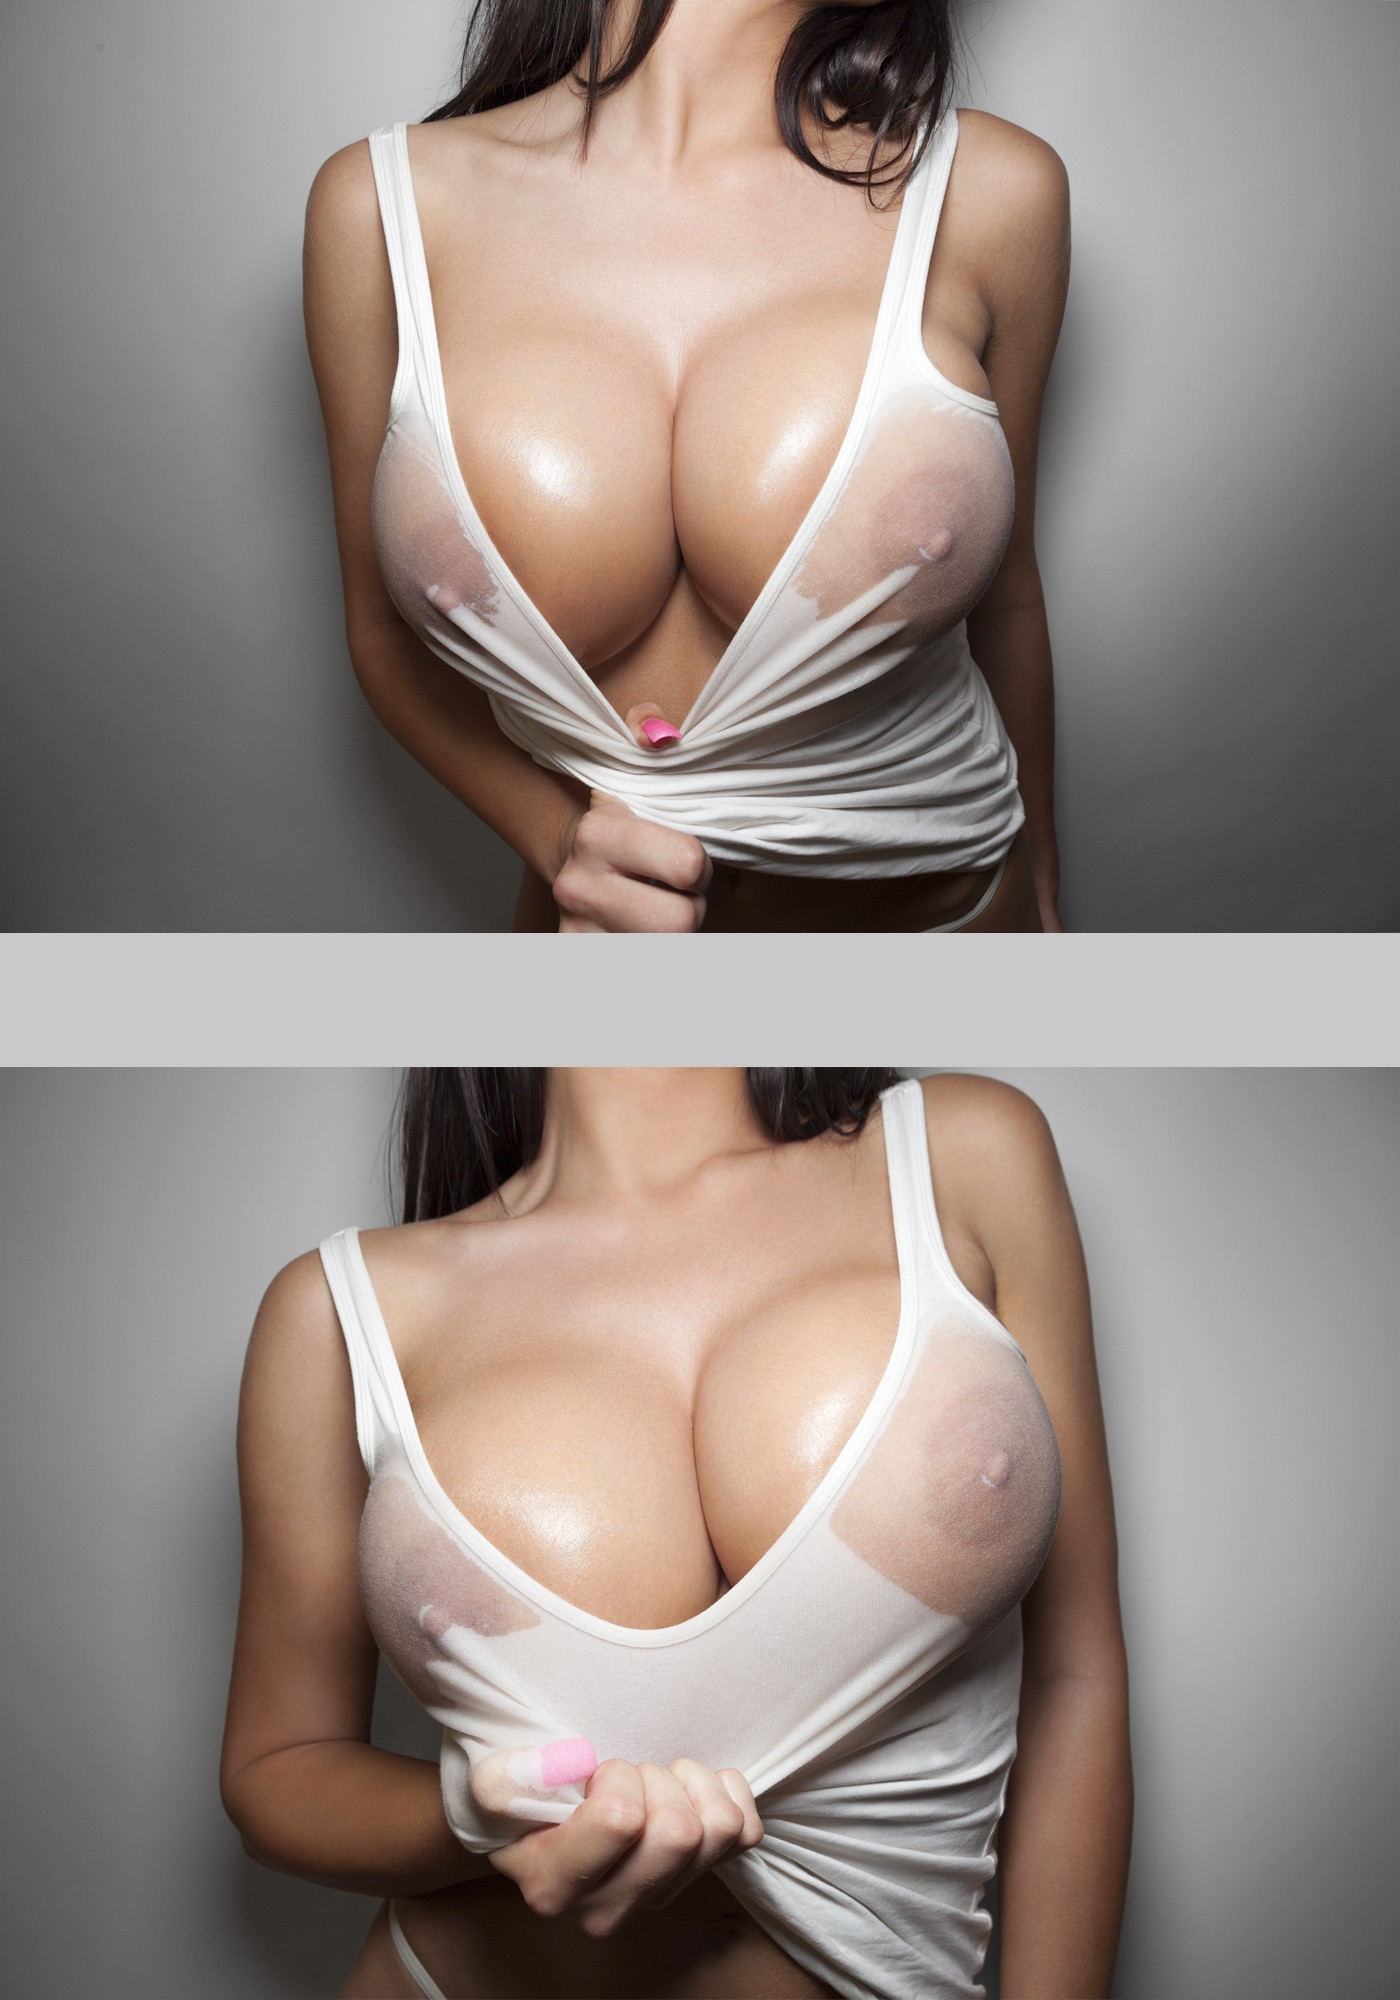 boobs-shirts-galleries-pussy-thumbs-hairy